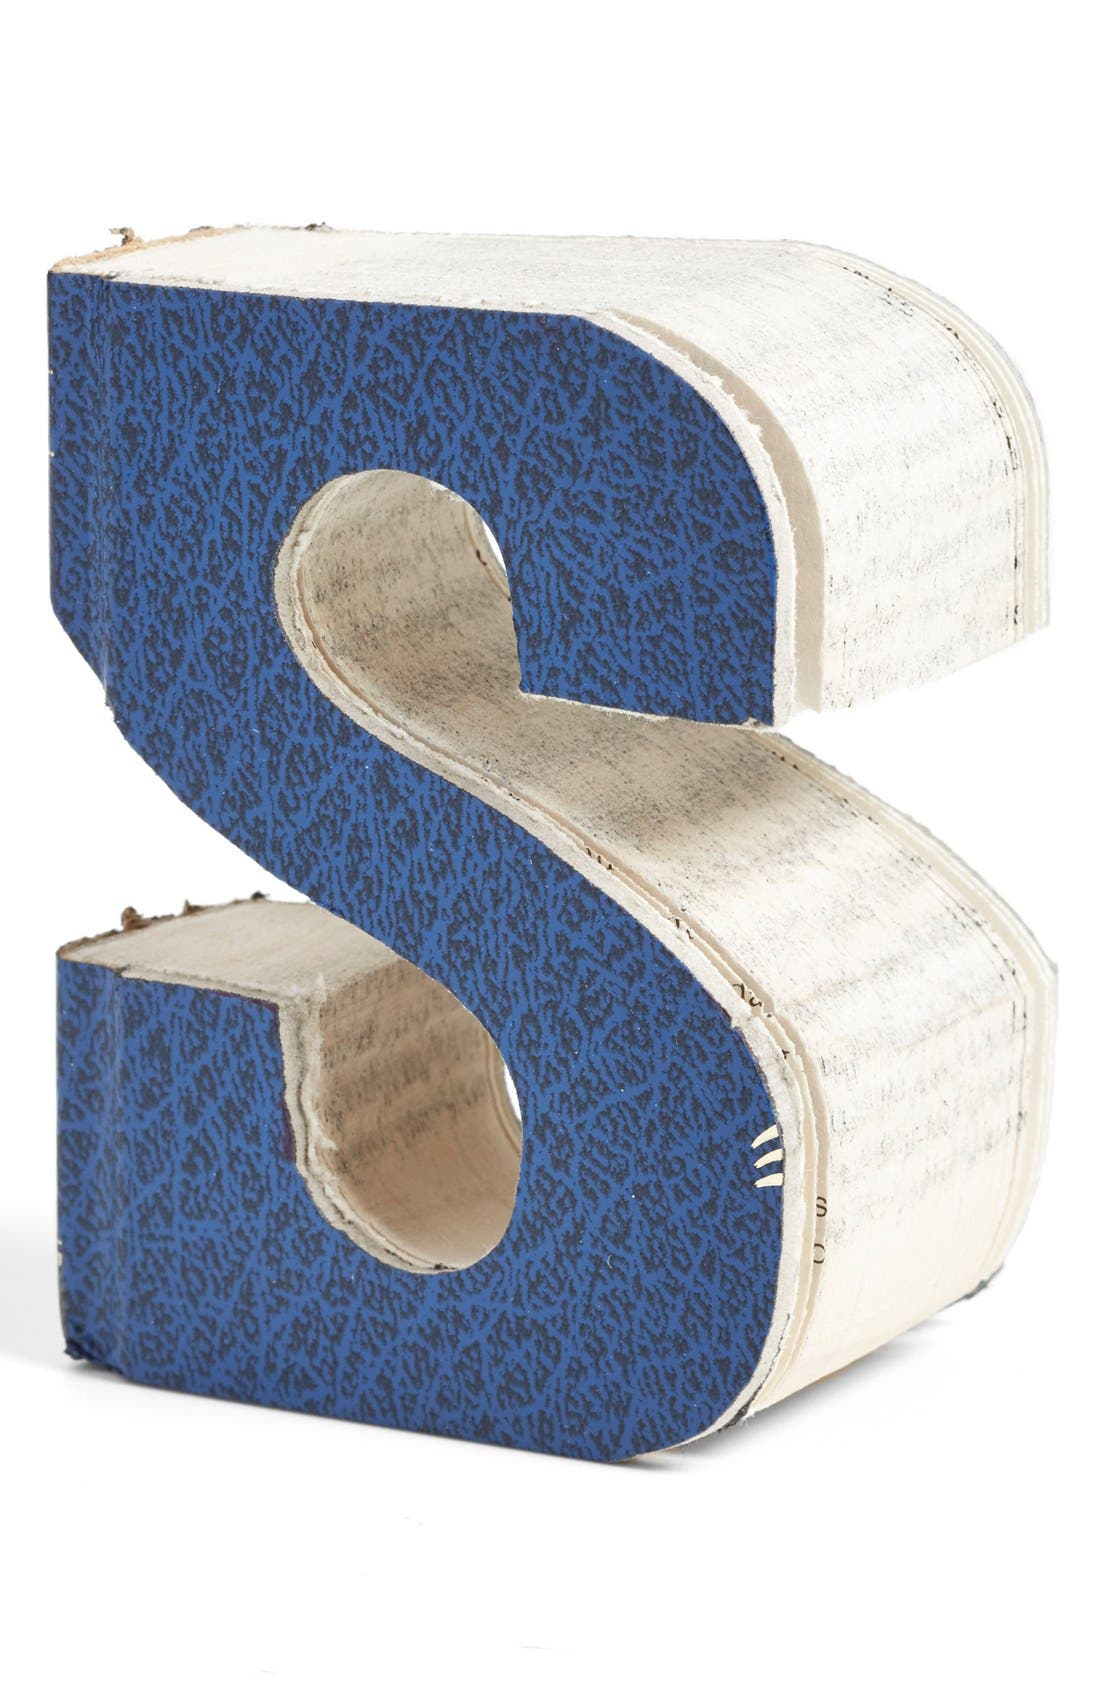 Main Image - Second Nature by Hand 'One of a Kind Letter' Hand Carved Recycled Book Shelf Art (Small)